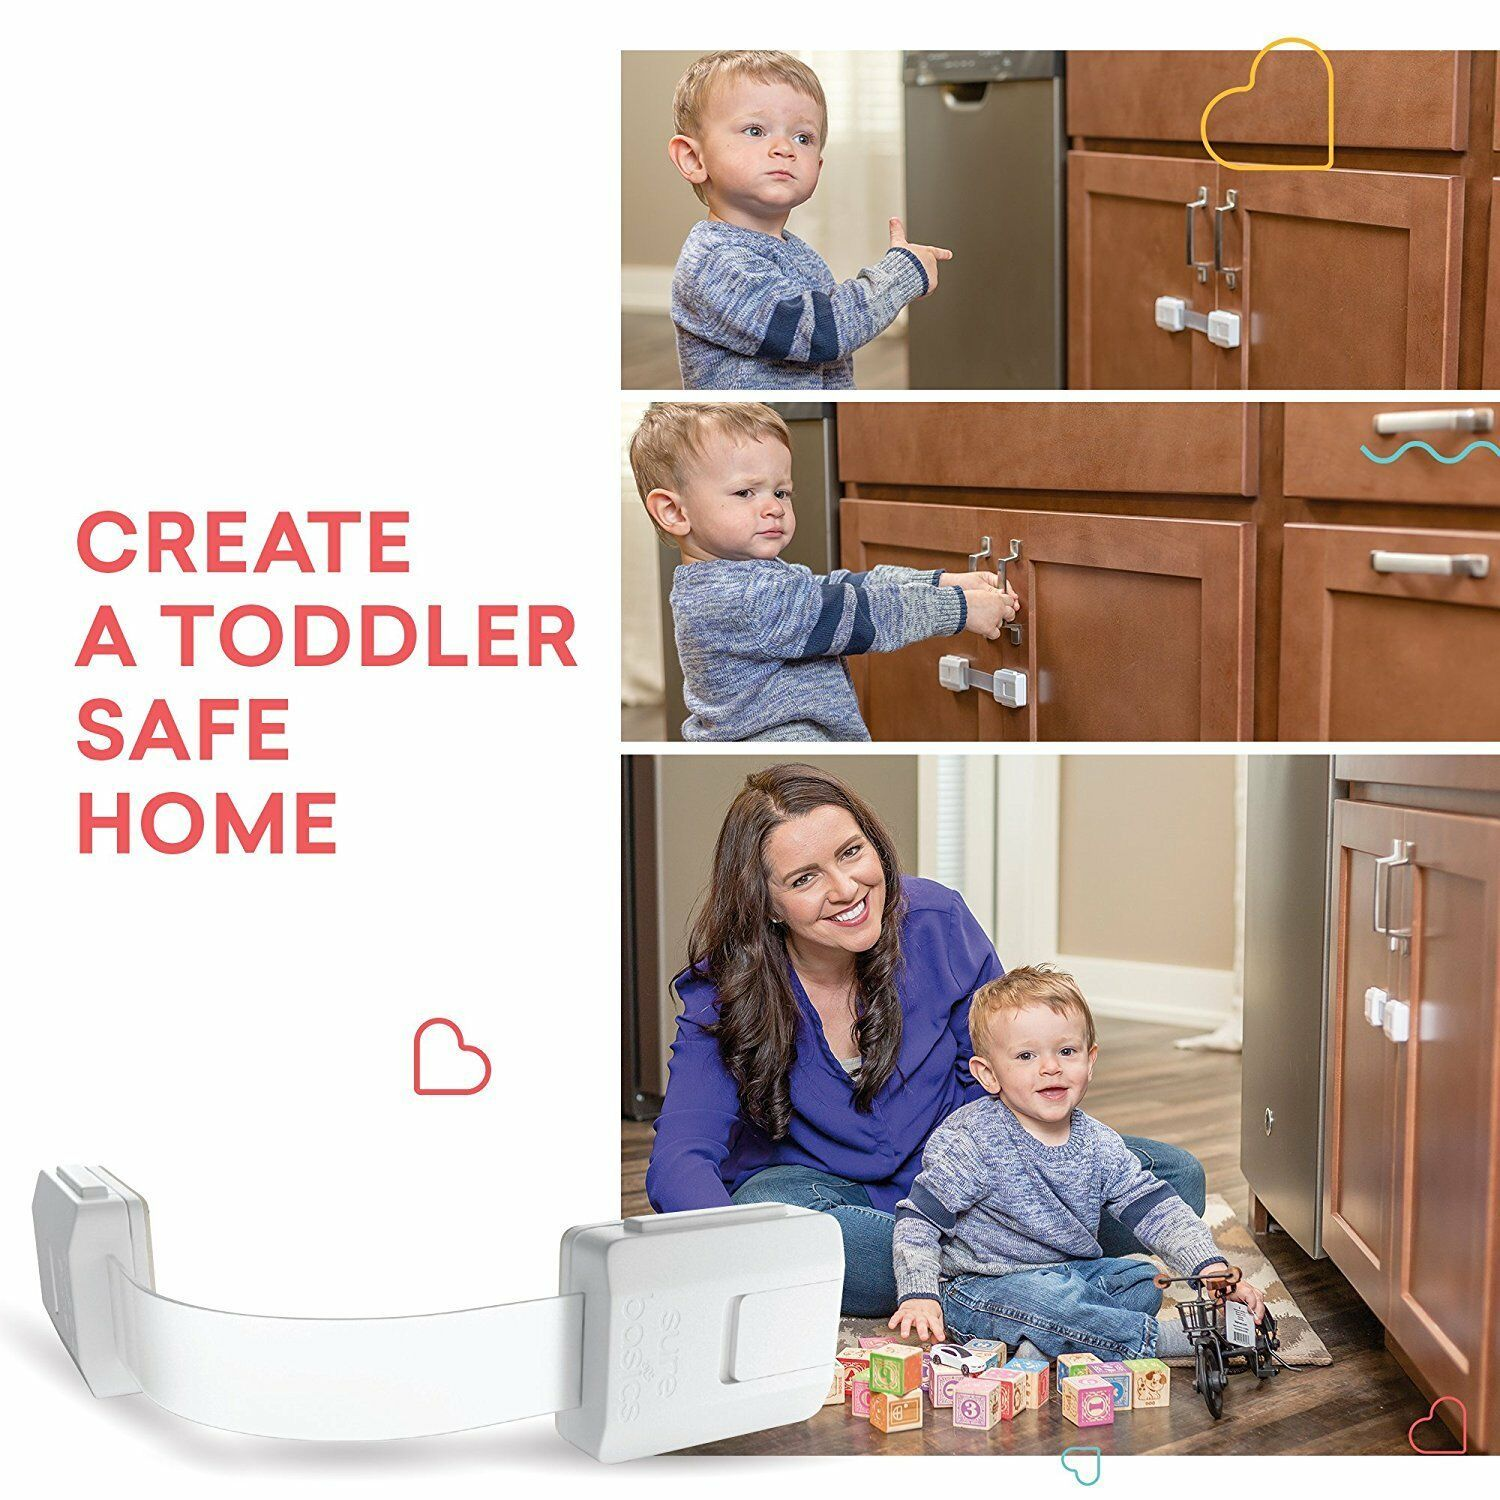 Sure Basics EasyGuard Baby Proofing Cabinet Locks Child Safety 6 Pack Brown